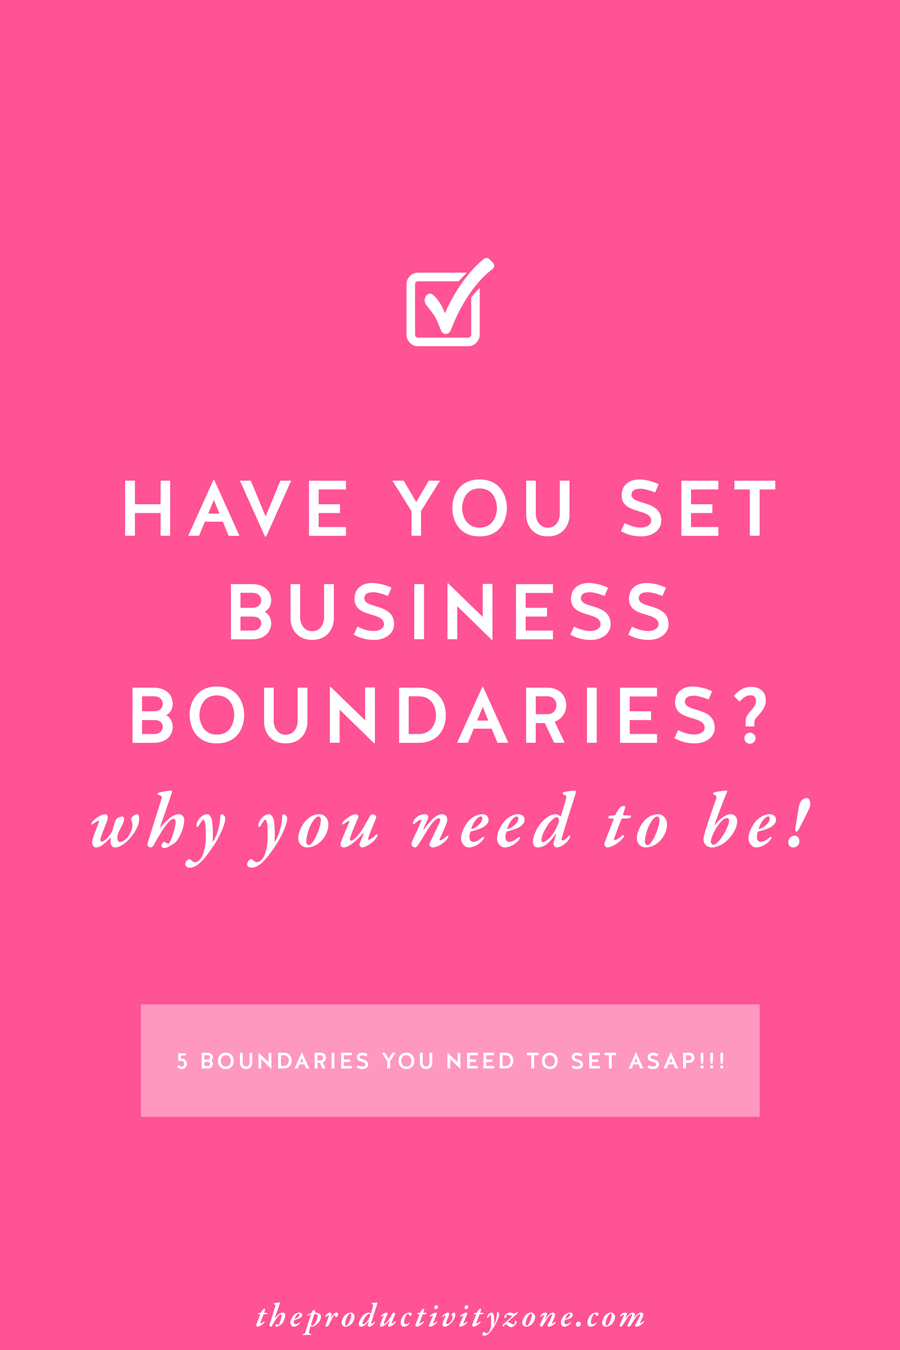 Just because you own a business, does not mean you have to hang a 24/7 sign on your brick and mortar or virtual door. The 5 business boundaries you need to set ASAP and WHY on The Productivity Zone!!